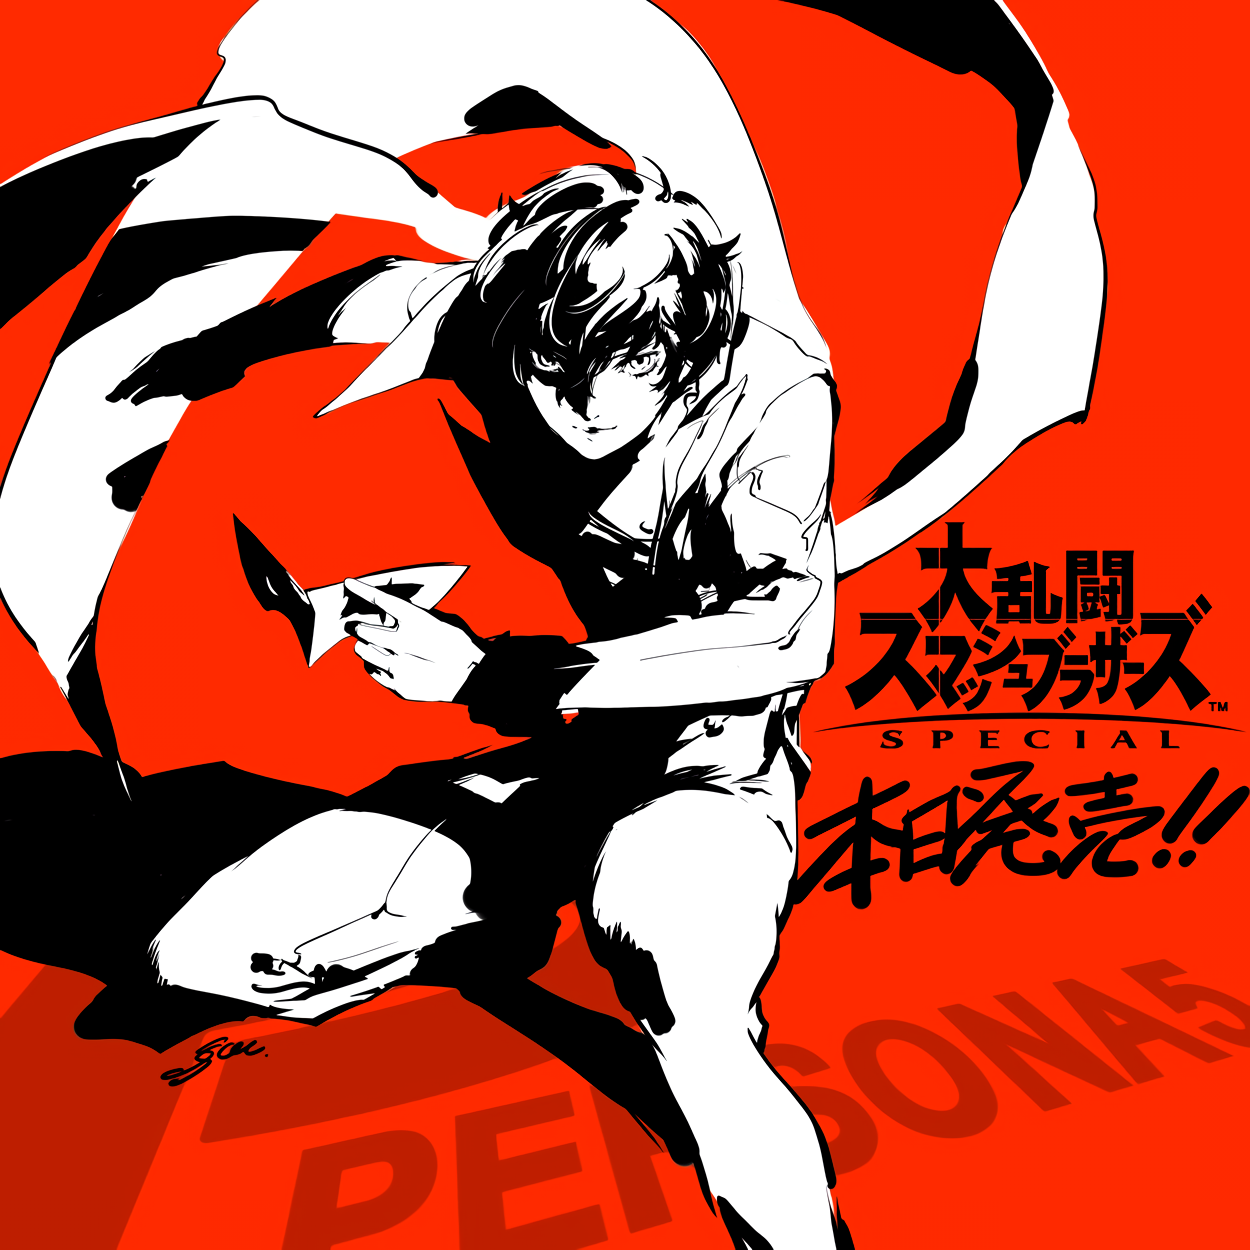 Kotaku, Laura Kate Dale and Persona 5: A Tale of Bad Journalism